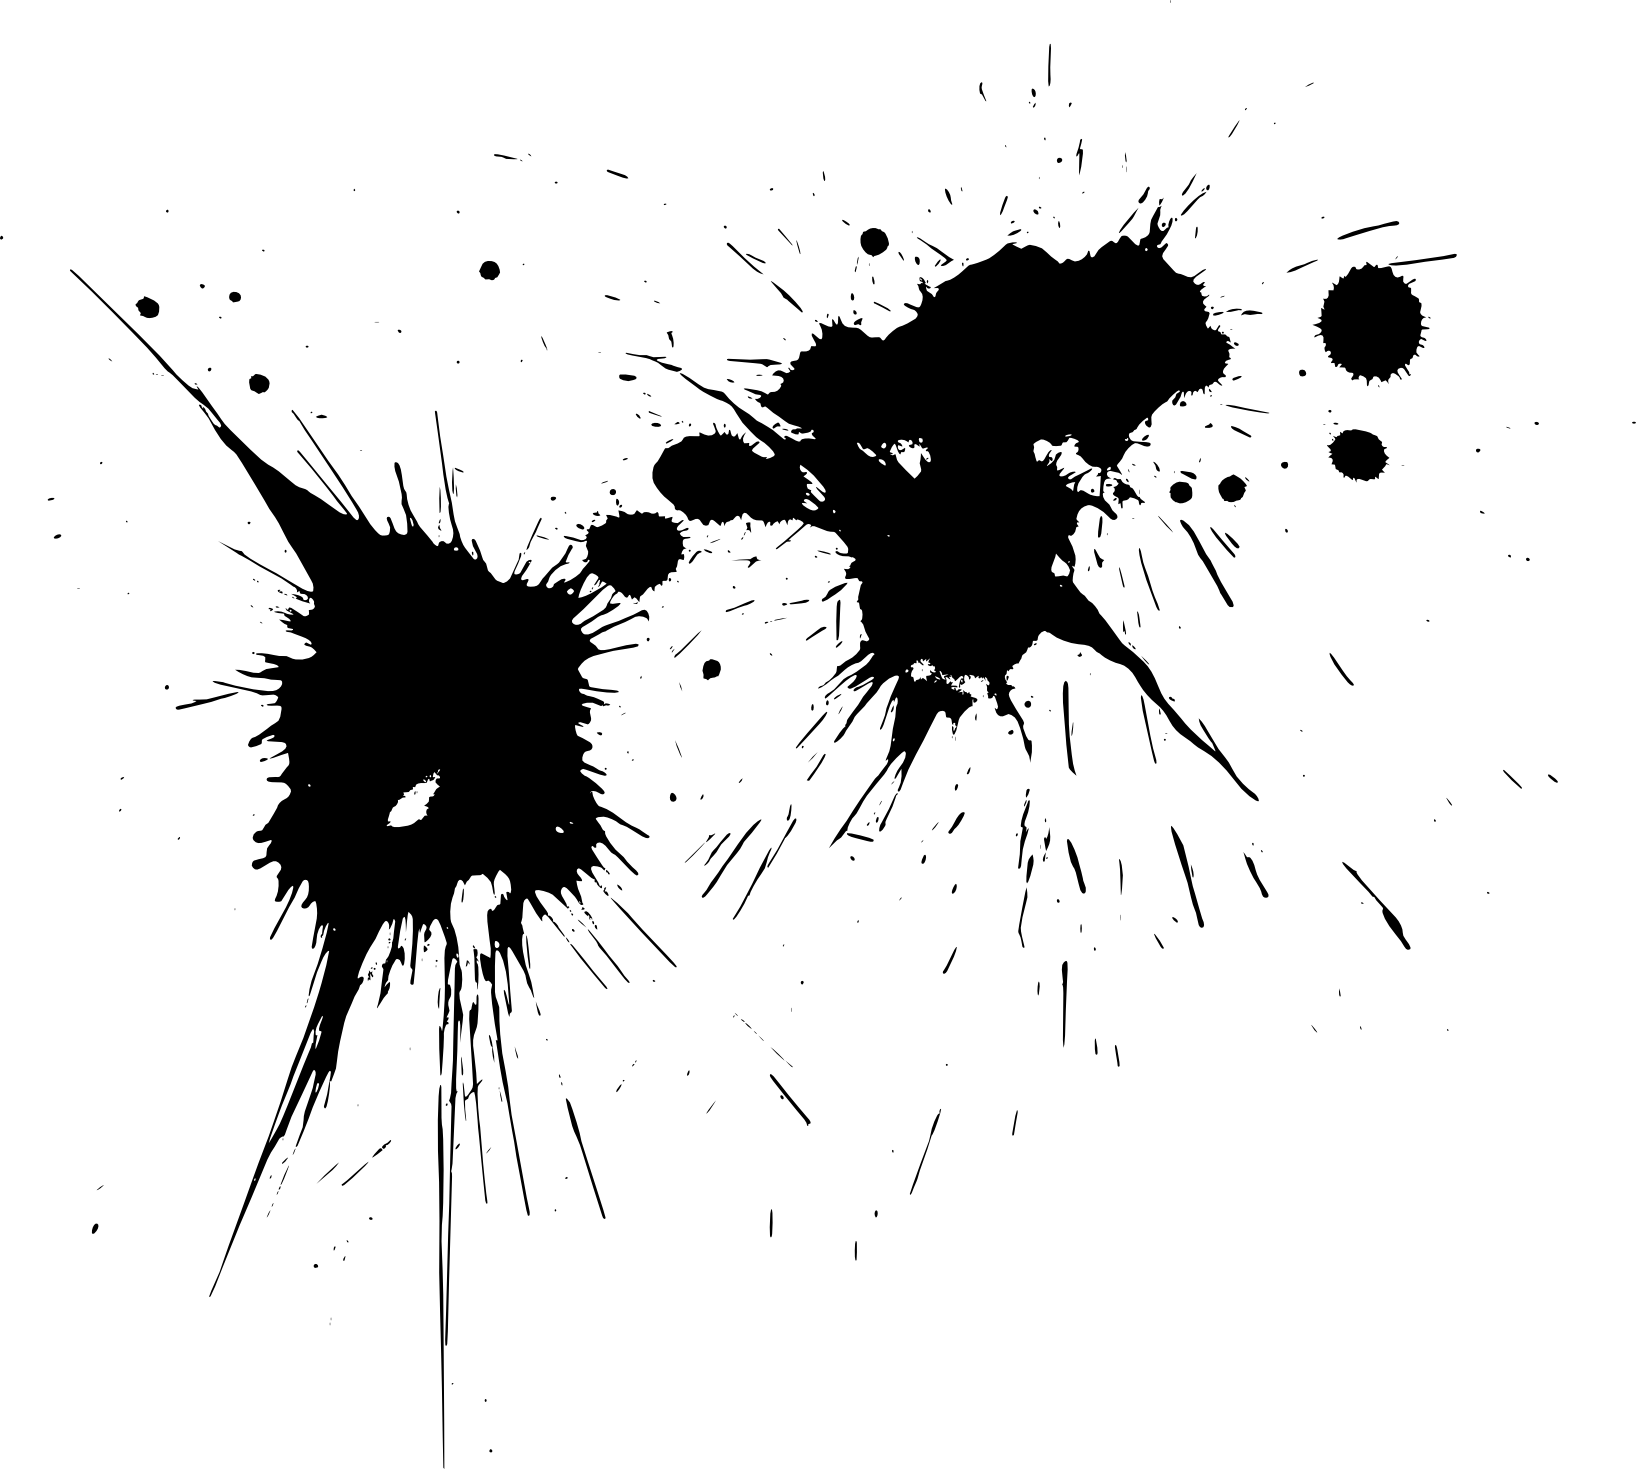 18 Paint Splatters (PNG Transparent) | OnlyGFX.com